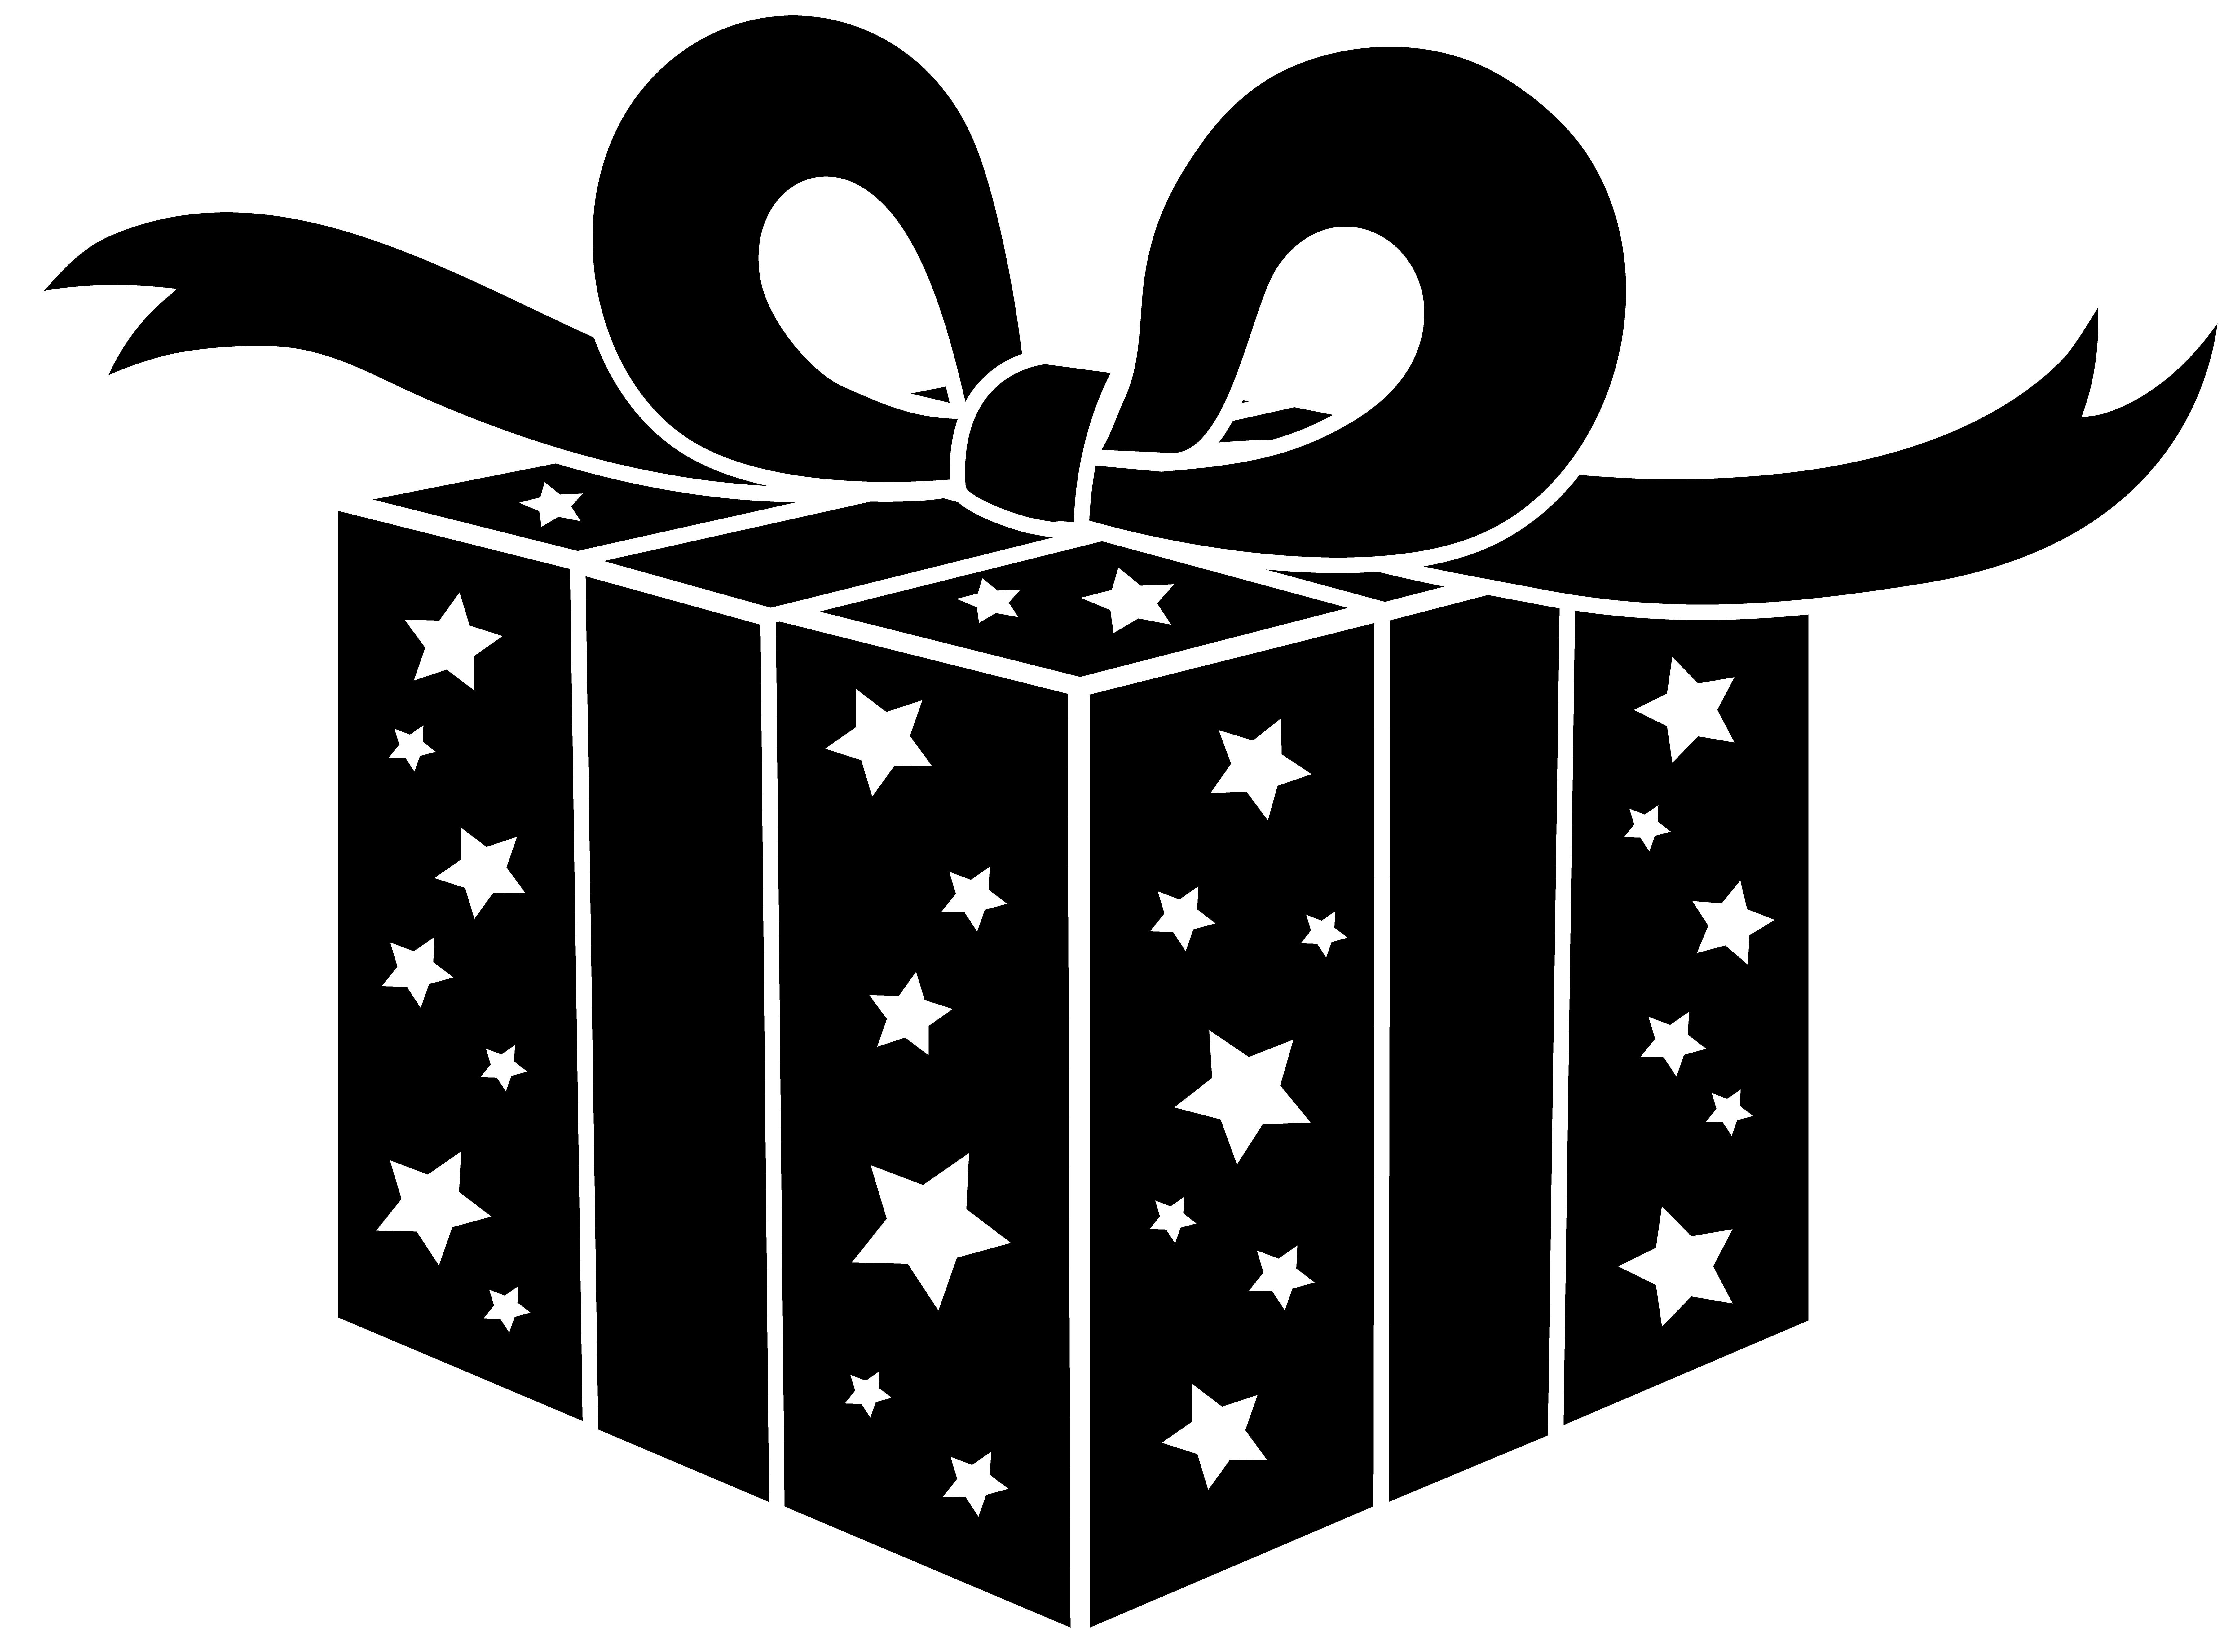 Presents png file black. Clipart present white christmas